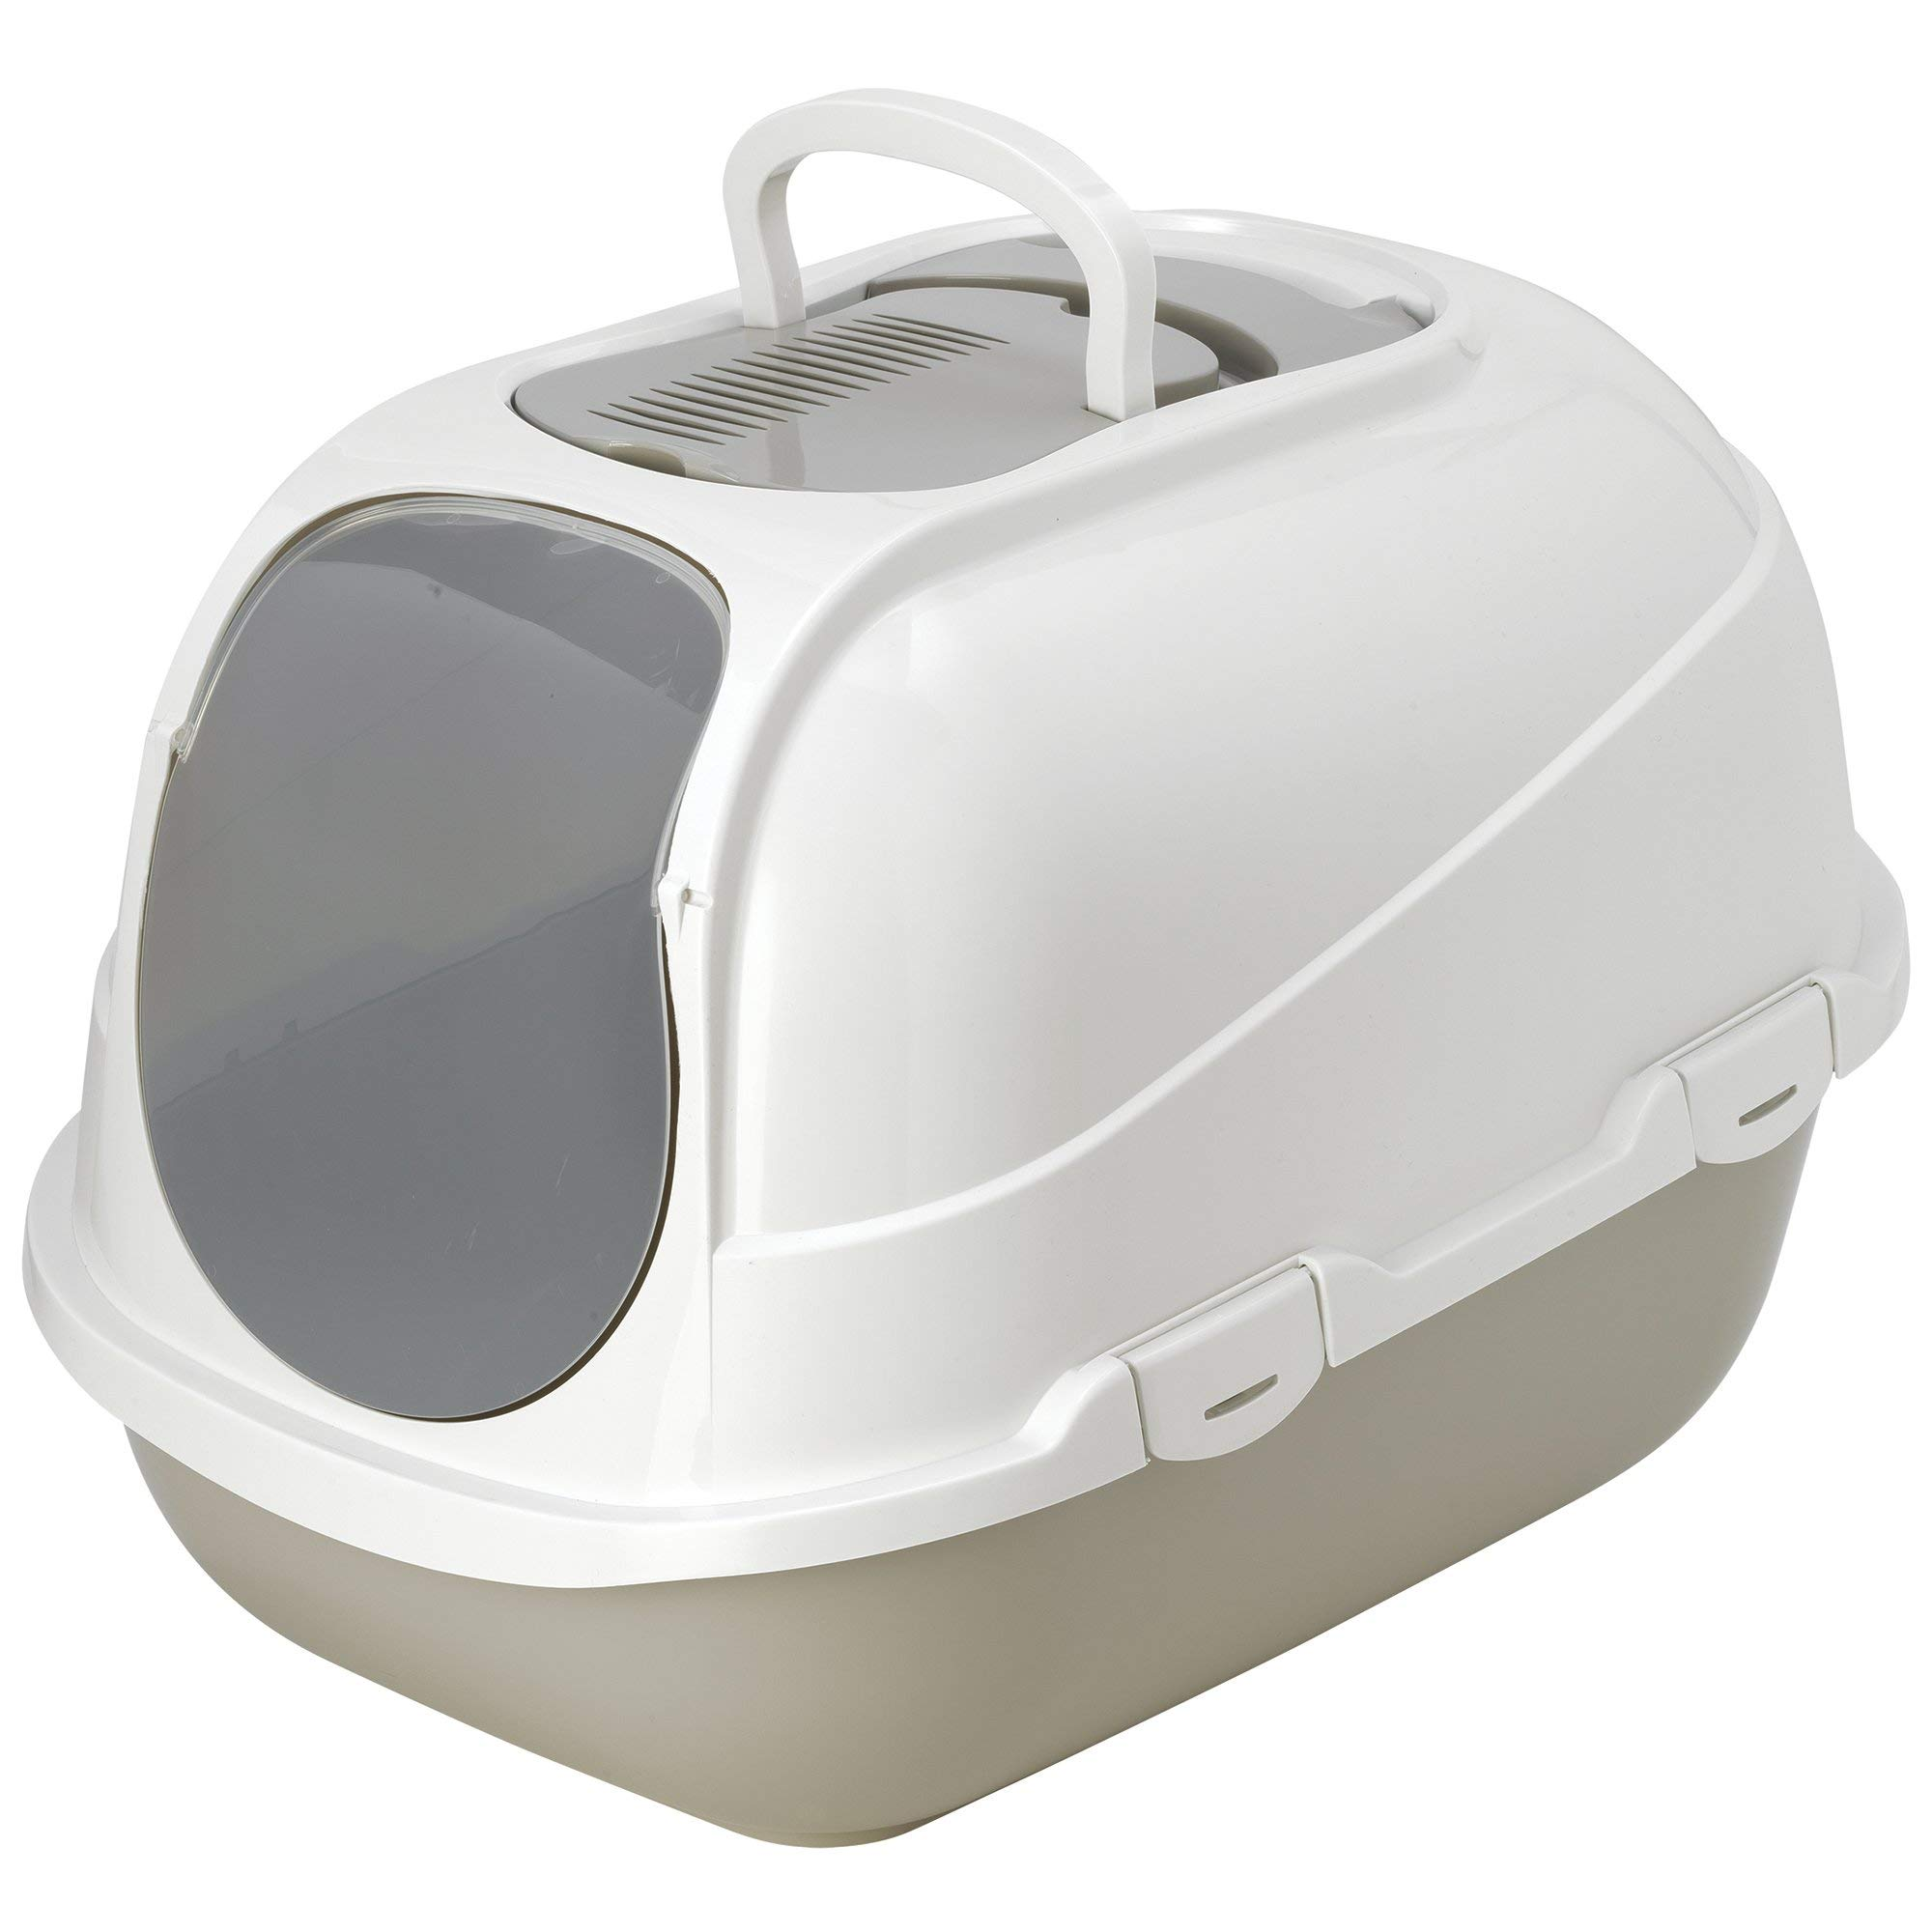 Moderna C270-0330 Multi Cats-Includes Liners Closed Litter Boxes